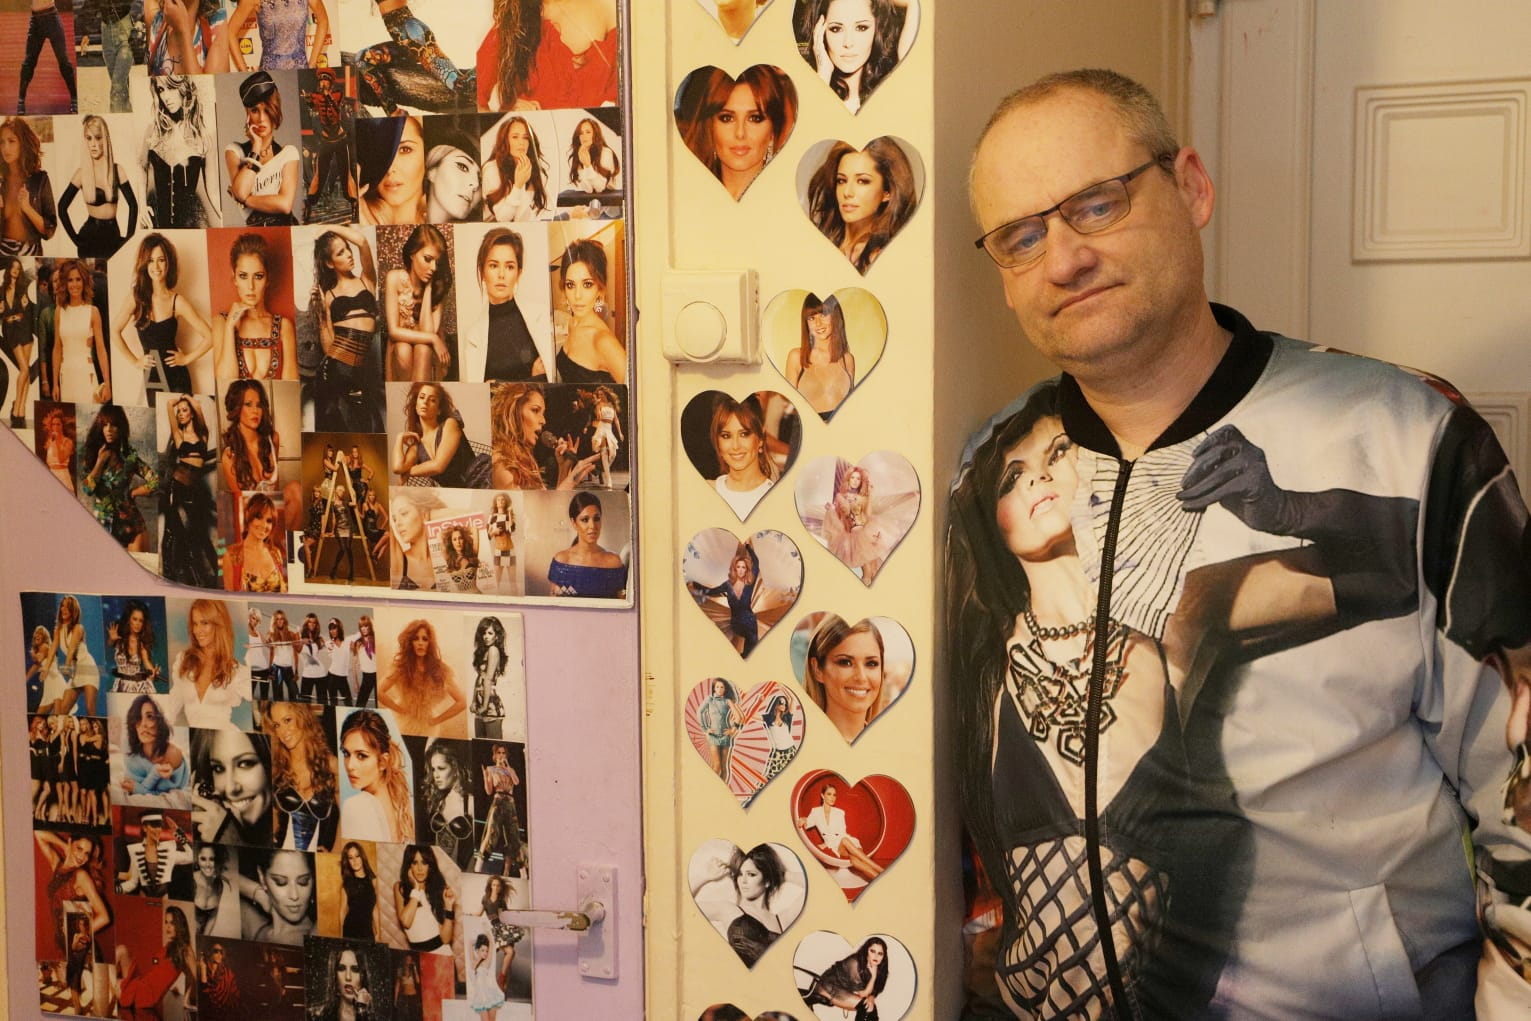 Cheryl superfan Shaun. Credit: BPM Media